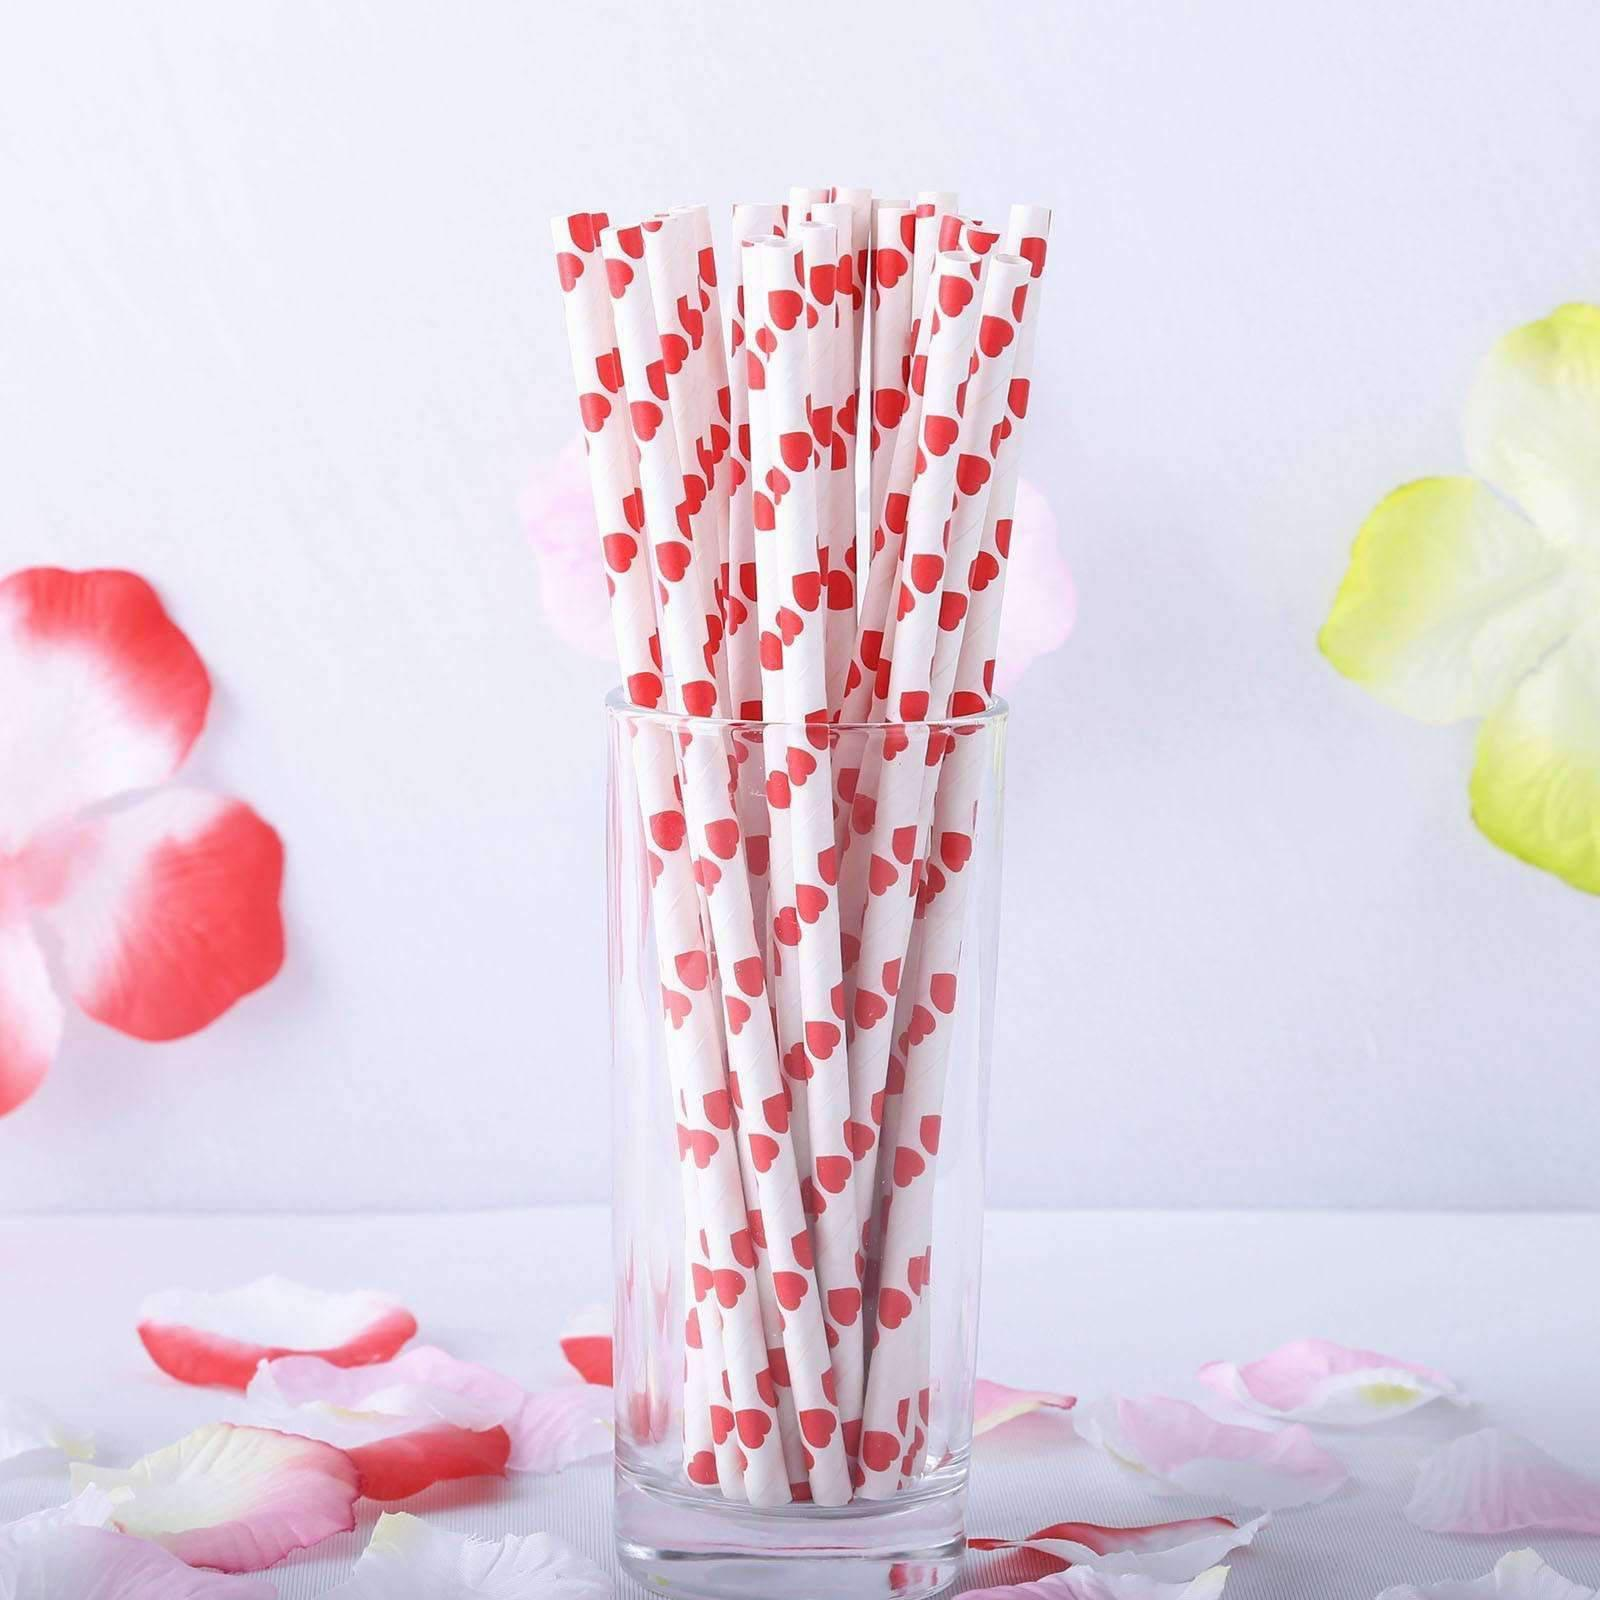 6mm Degradable white with red heart Paper Straw